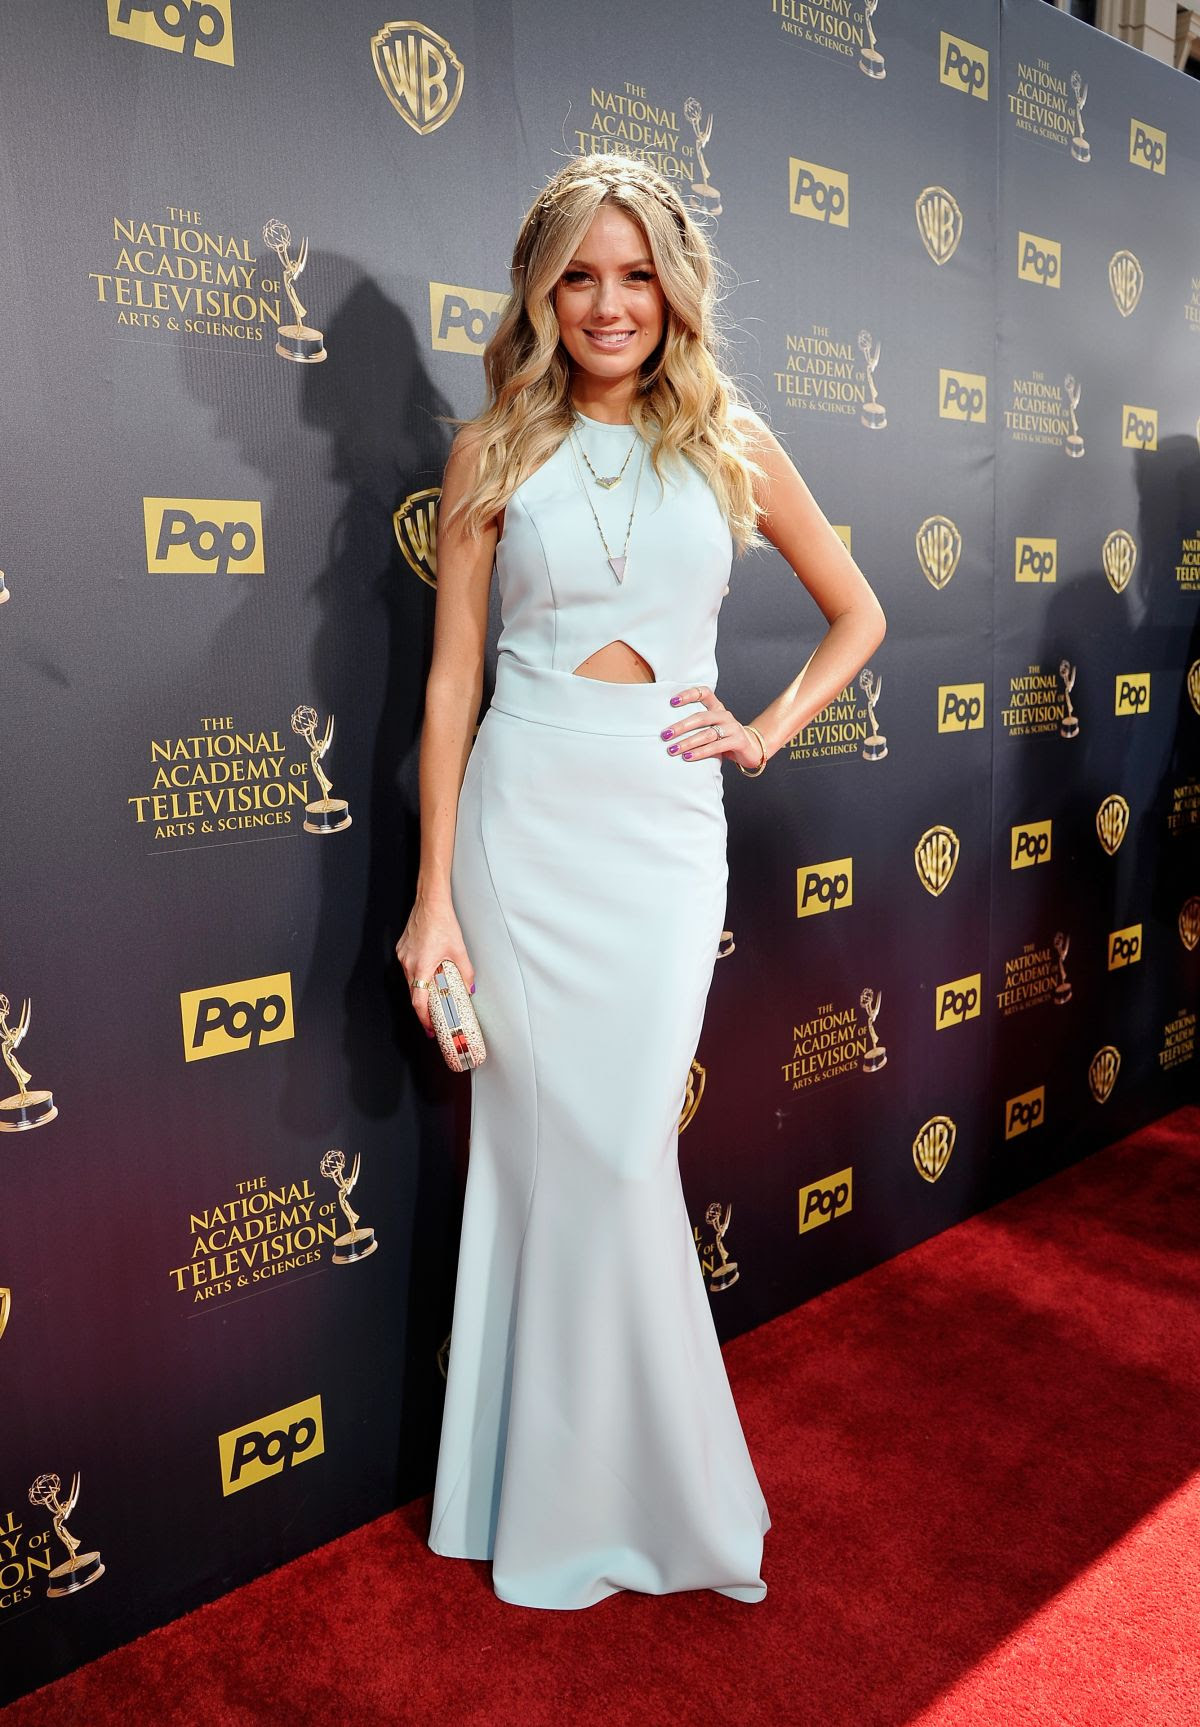 MELISSA ORDWAY at 2015 Daytime Emmy Awards in Burbank